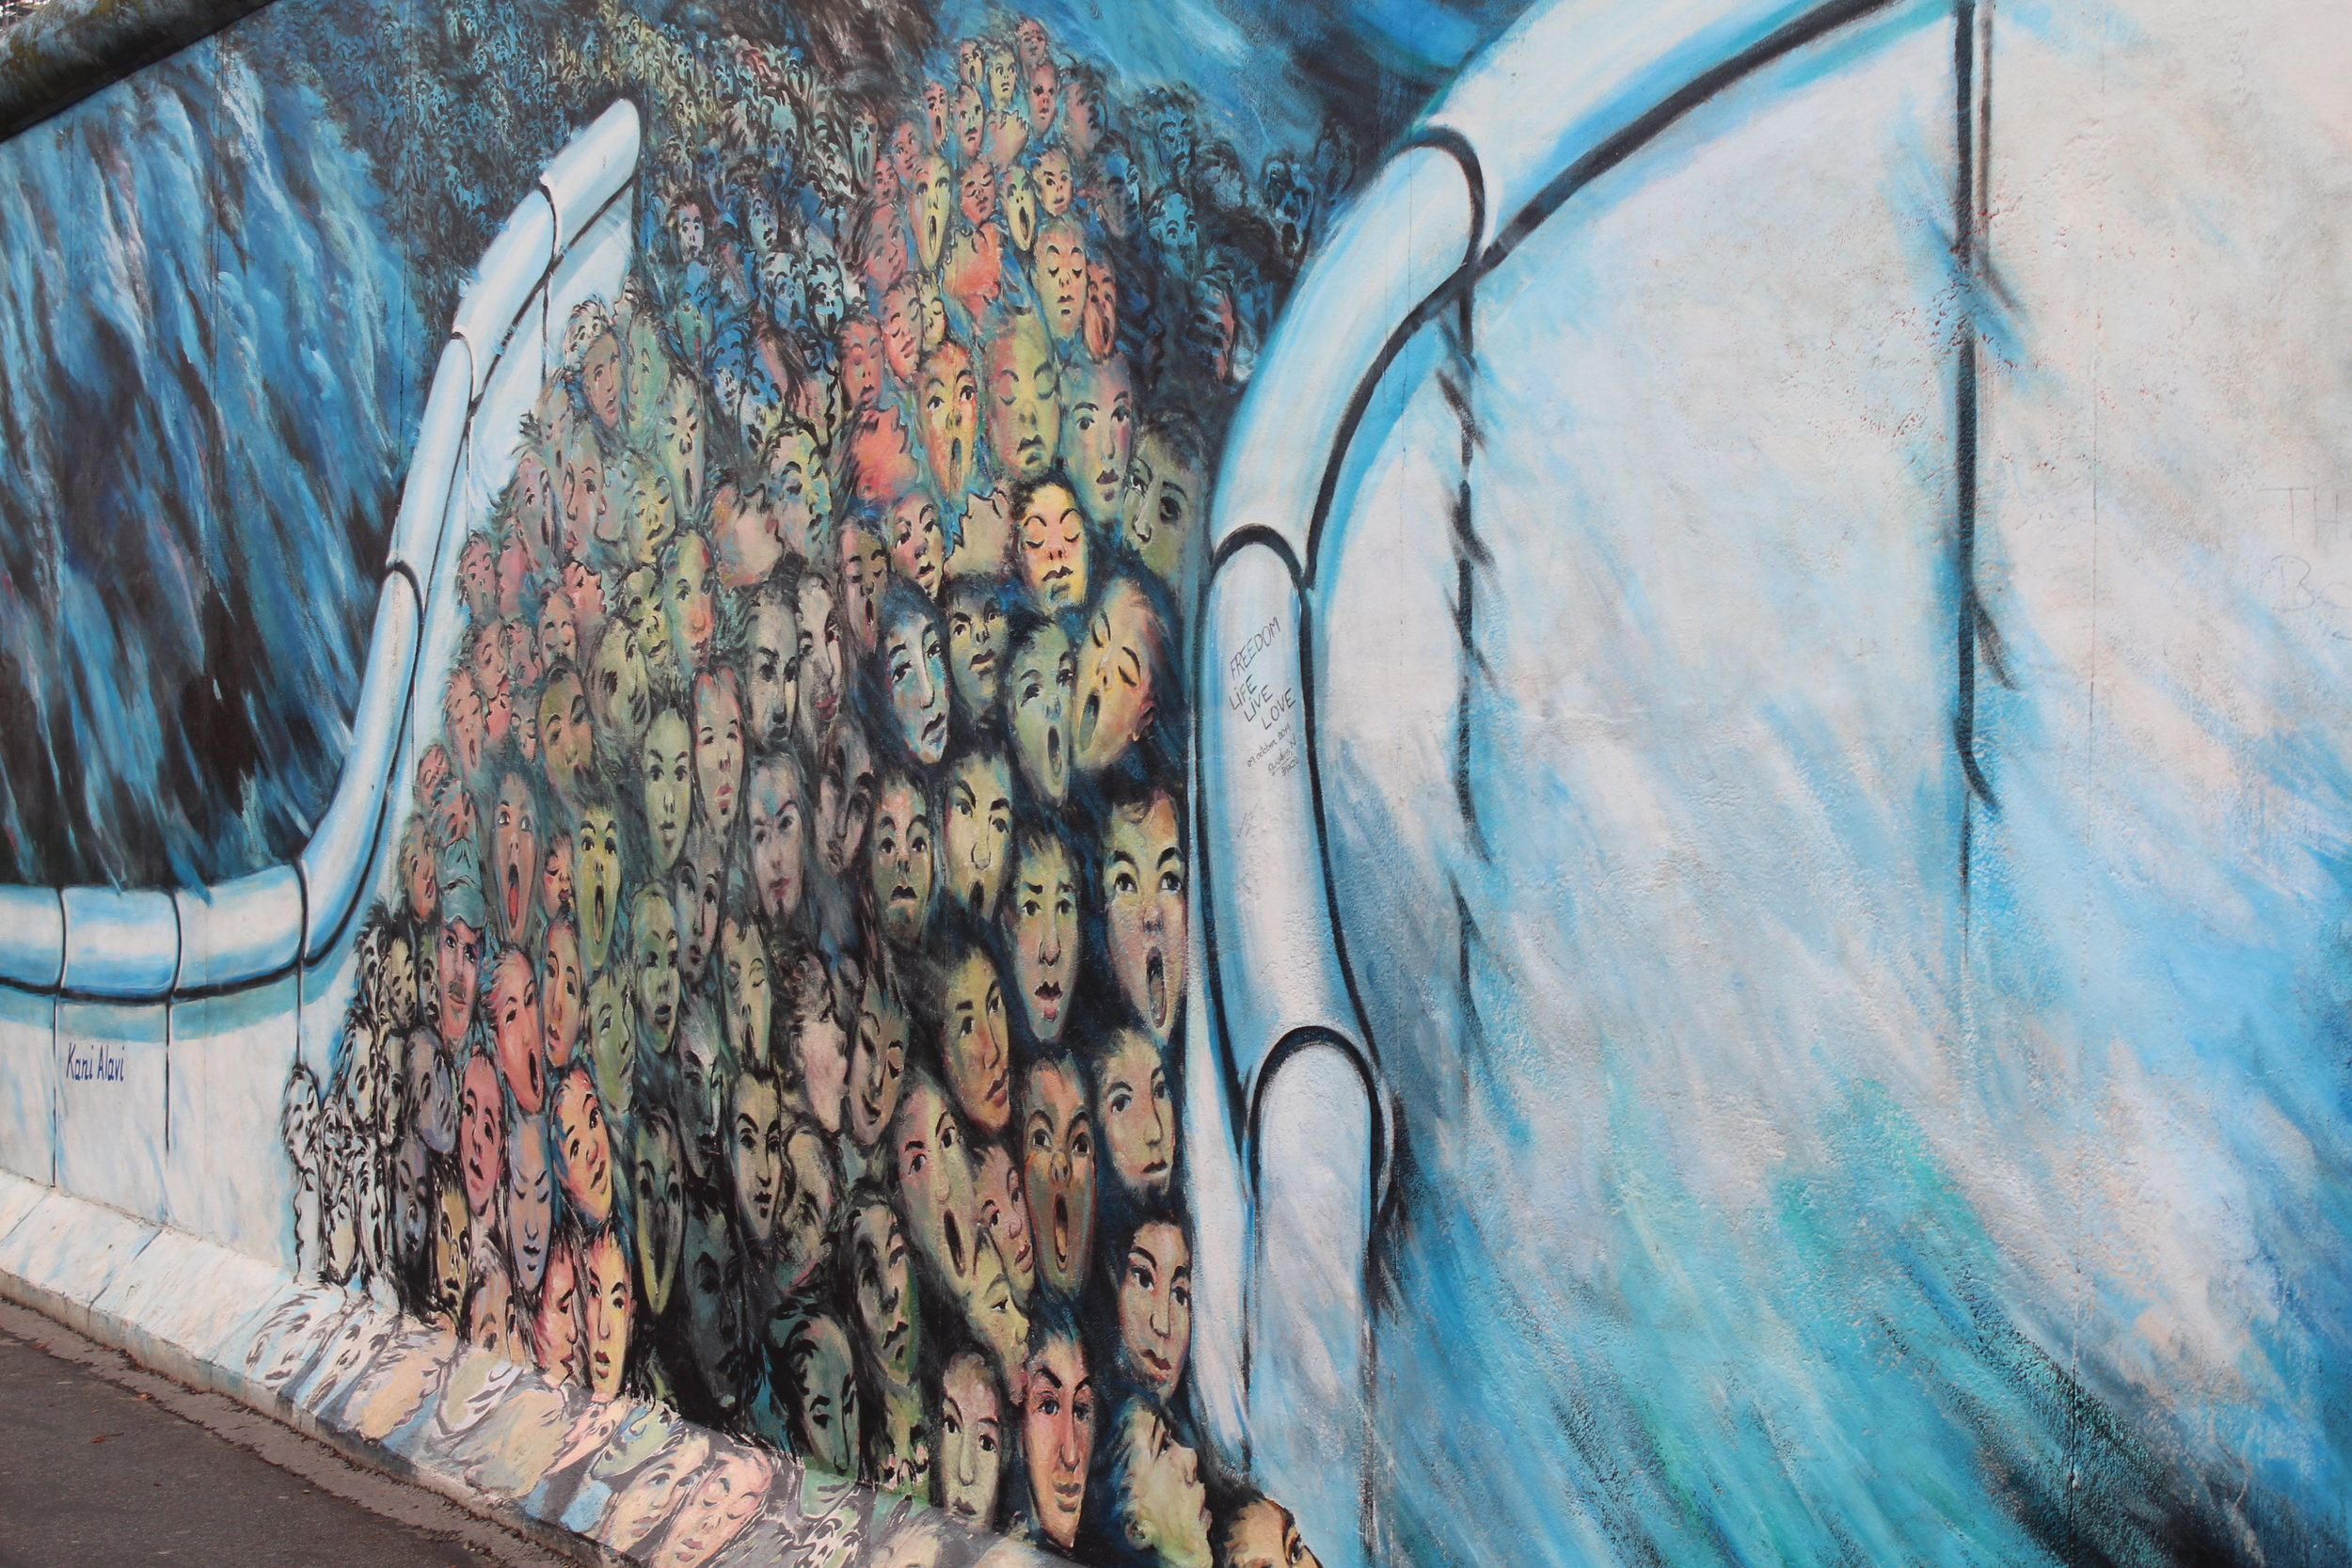 """Kani Alavi, who moved from Iran to West Berlinin 1980, used to live four metres away from the wall, next to Checkpoint Charlie. This painting, """"Es geschah im November"""", shows thousands of insecure and sad faces of East Berliner's crossing over to the west when the wall came down. He often speaks out about his surprise when he looked closer at the expressions from East Berliners and found fear rather than excitement."""